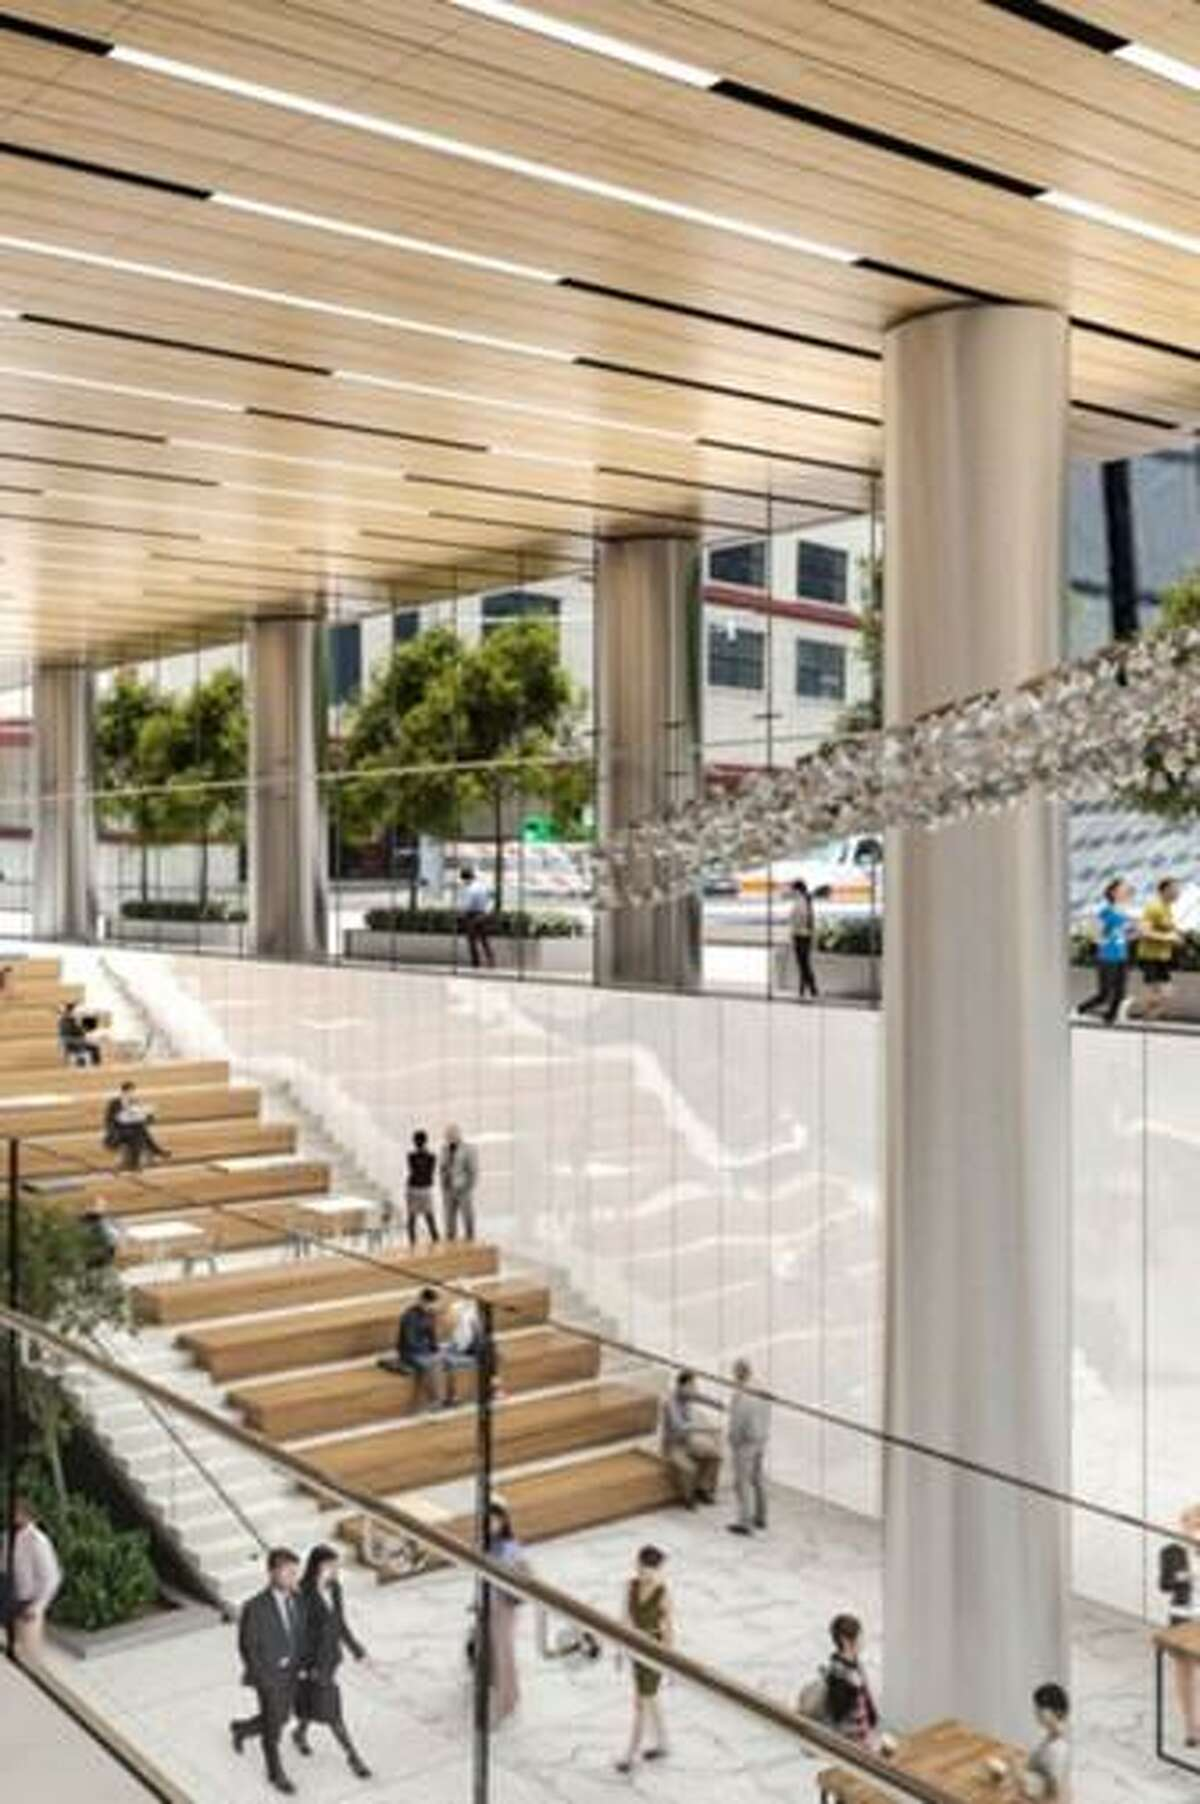 Waste Management plans to move their corporate employees to a new headquarters this year to 284,000 square feet in the Capitol Tower at 800 Capitol Street. Renderings show the common area of the Capitol Tower.